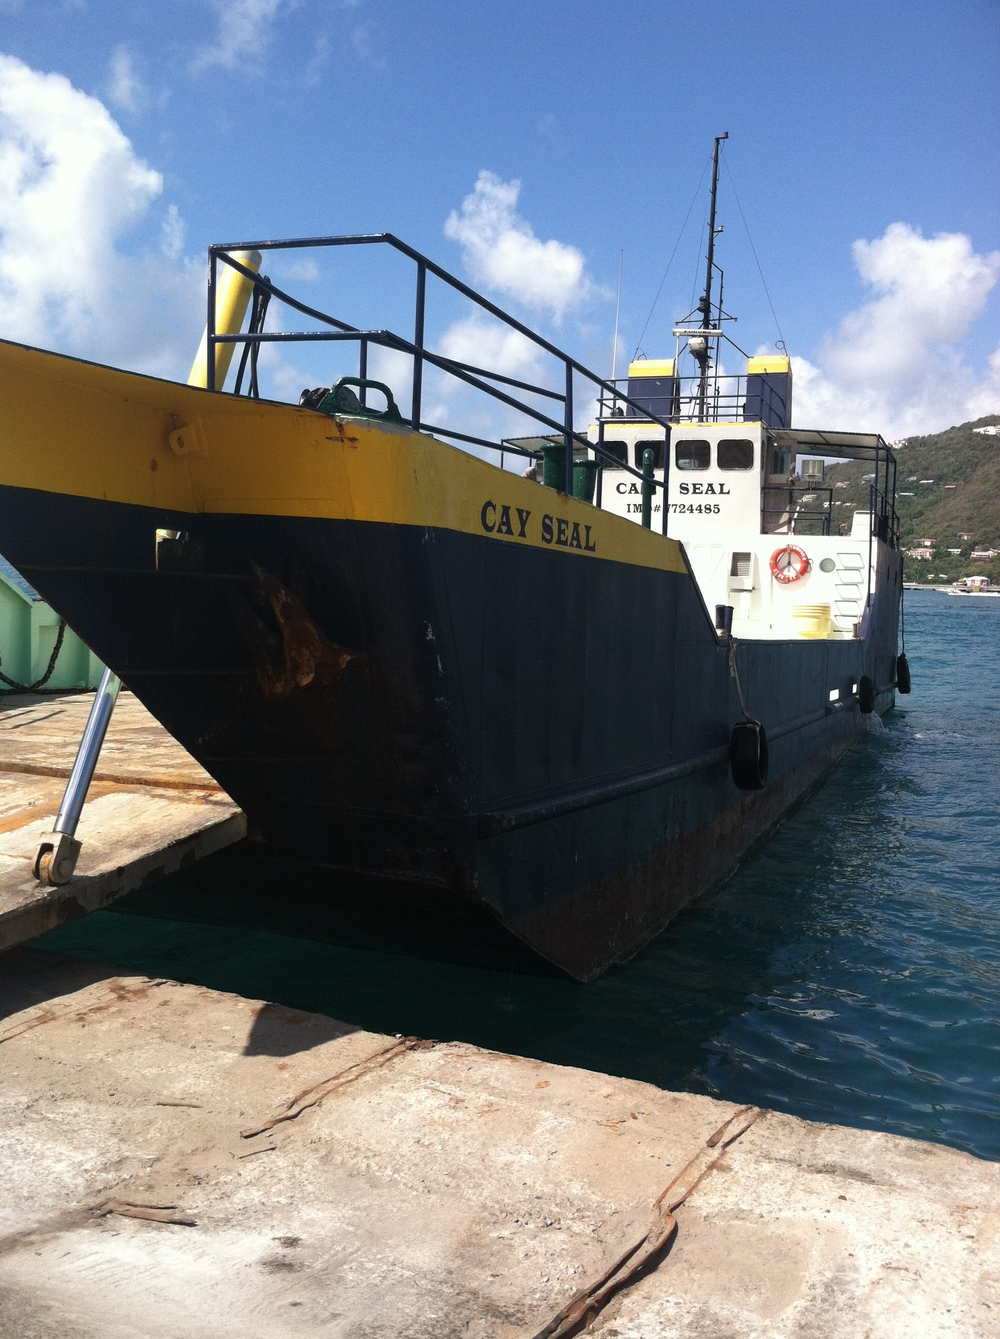 The Cay Seal is a bow ramp vessel which can load and unload cargo in very shallow water.